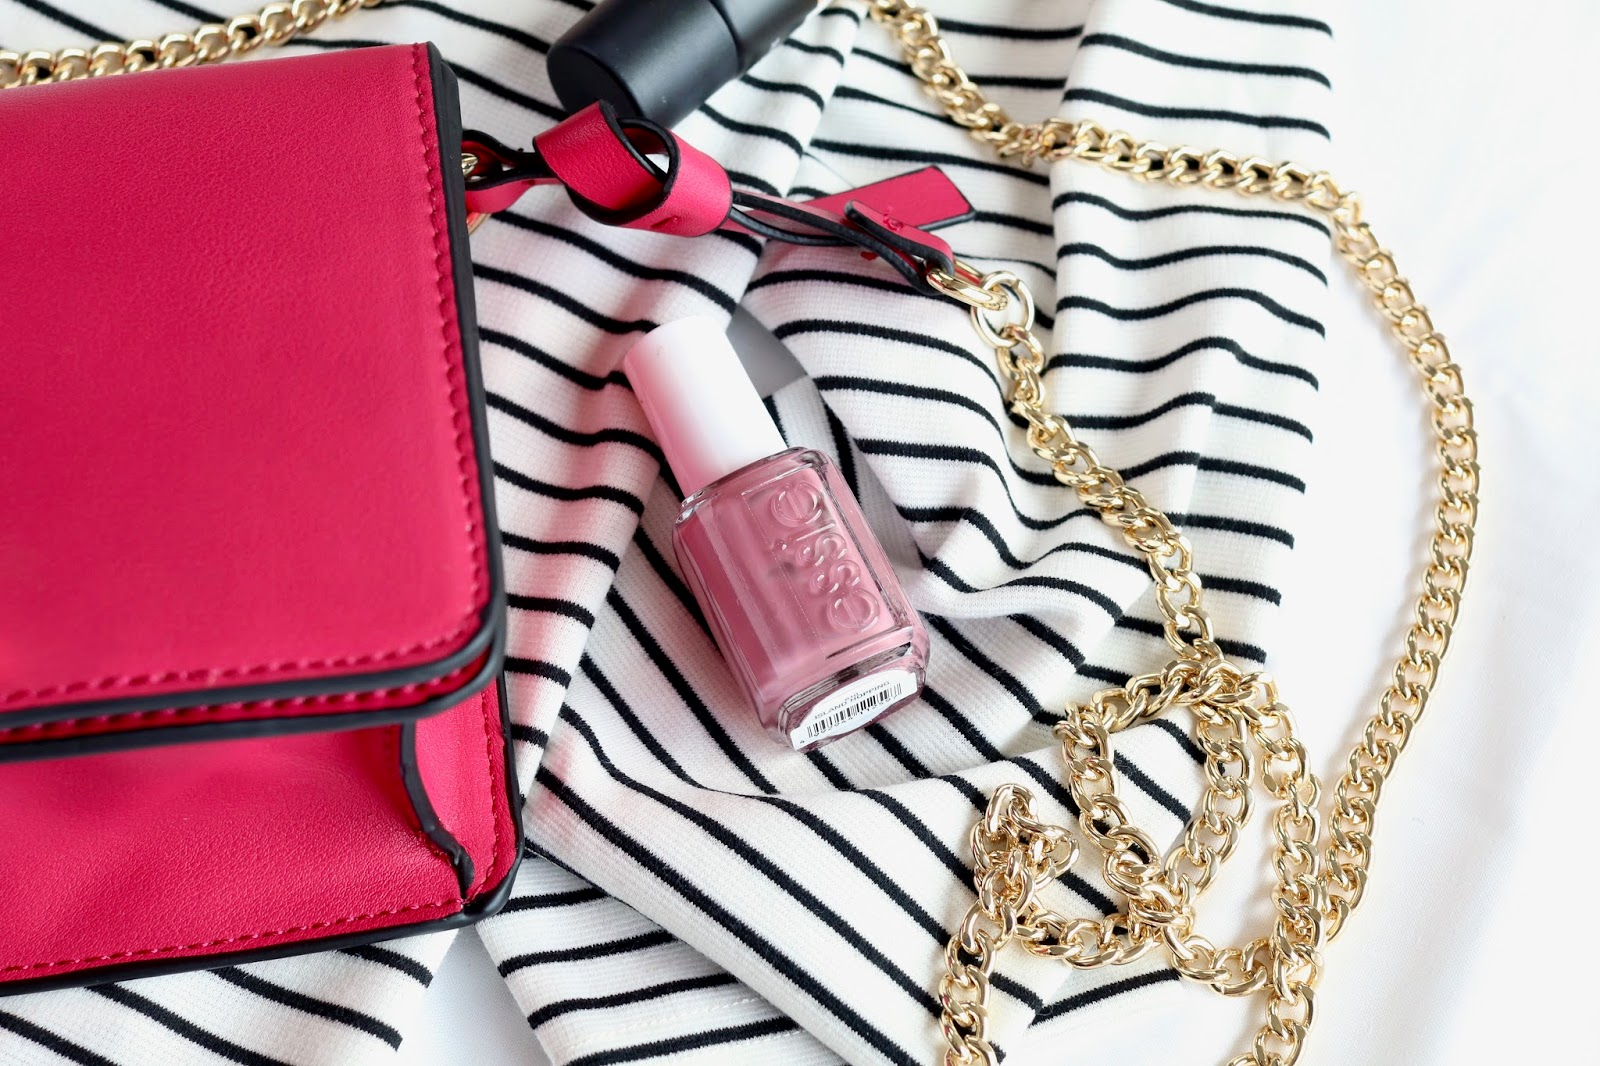 Current-favourites-Joanie-clothing-fries-Zara-handbag-essie-polish-island-hopping